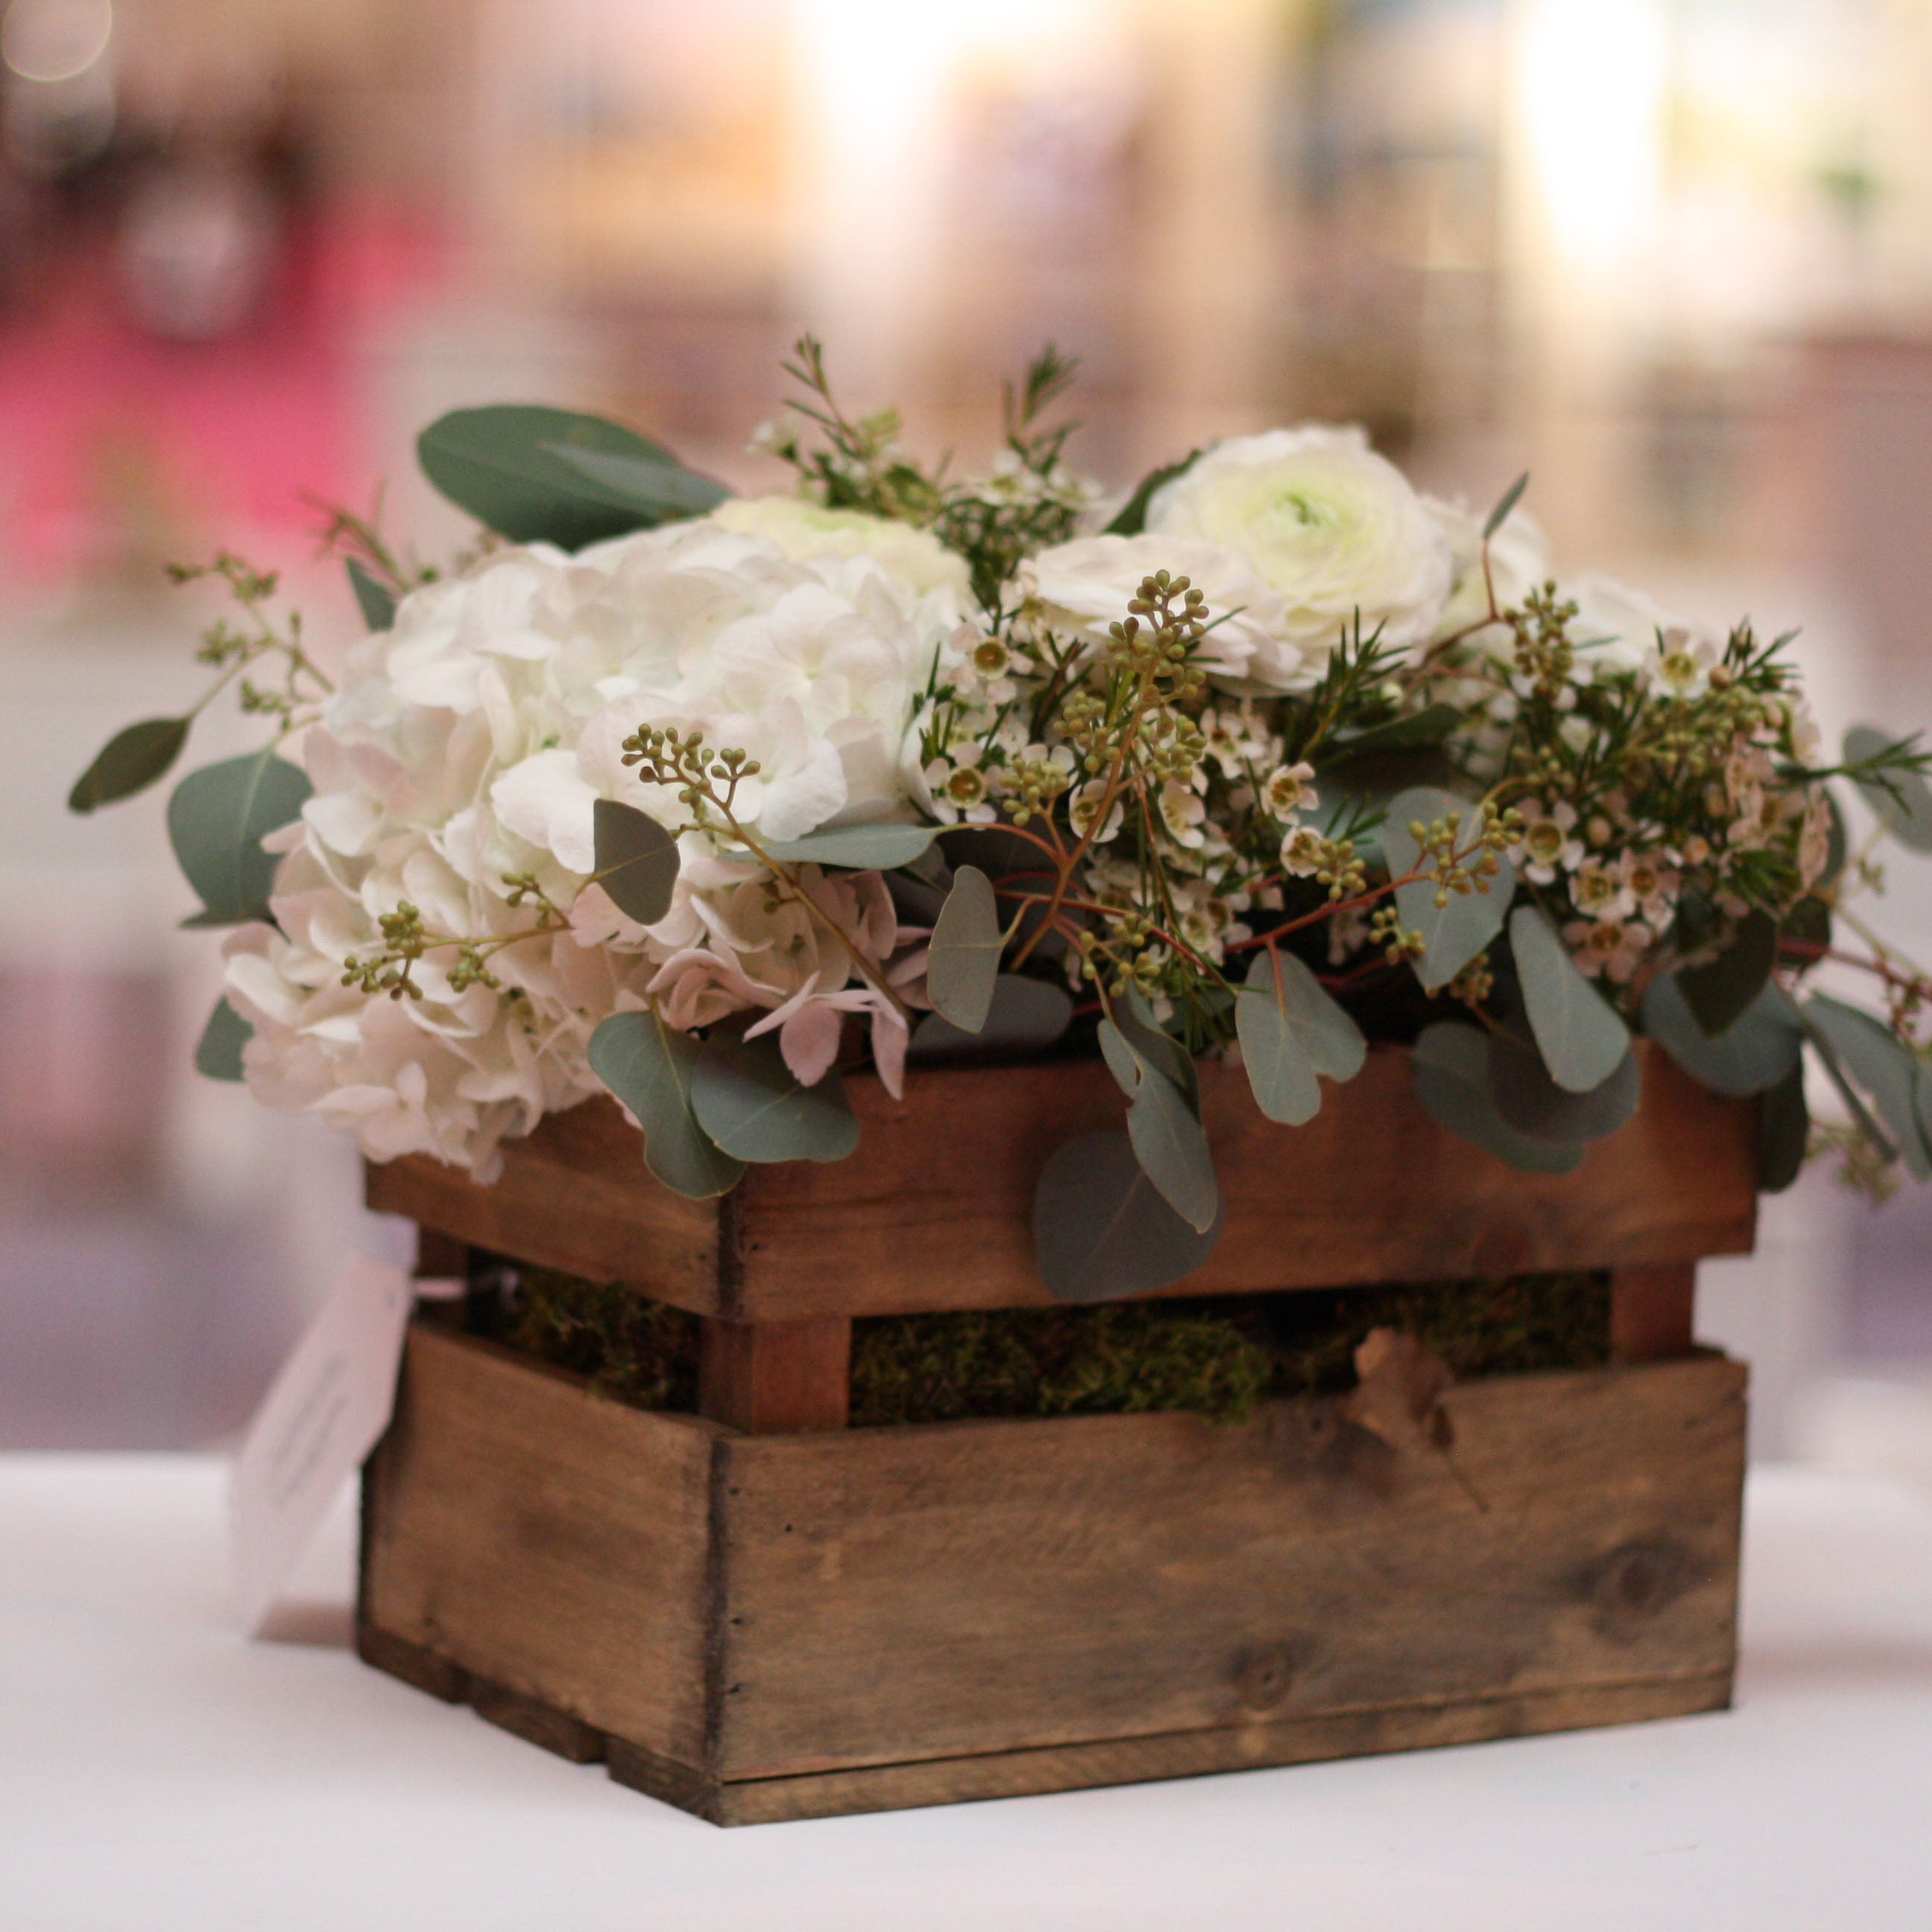 Wooden Crate Box Rustic Wedding Centrepiece The Wedding Of My Dreams